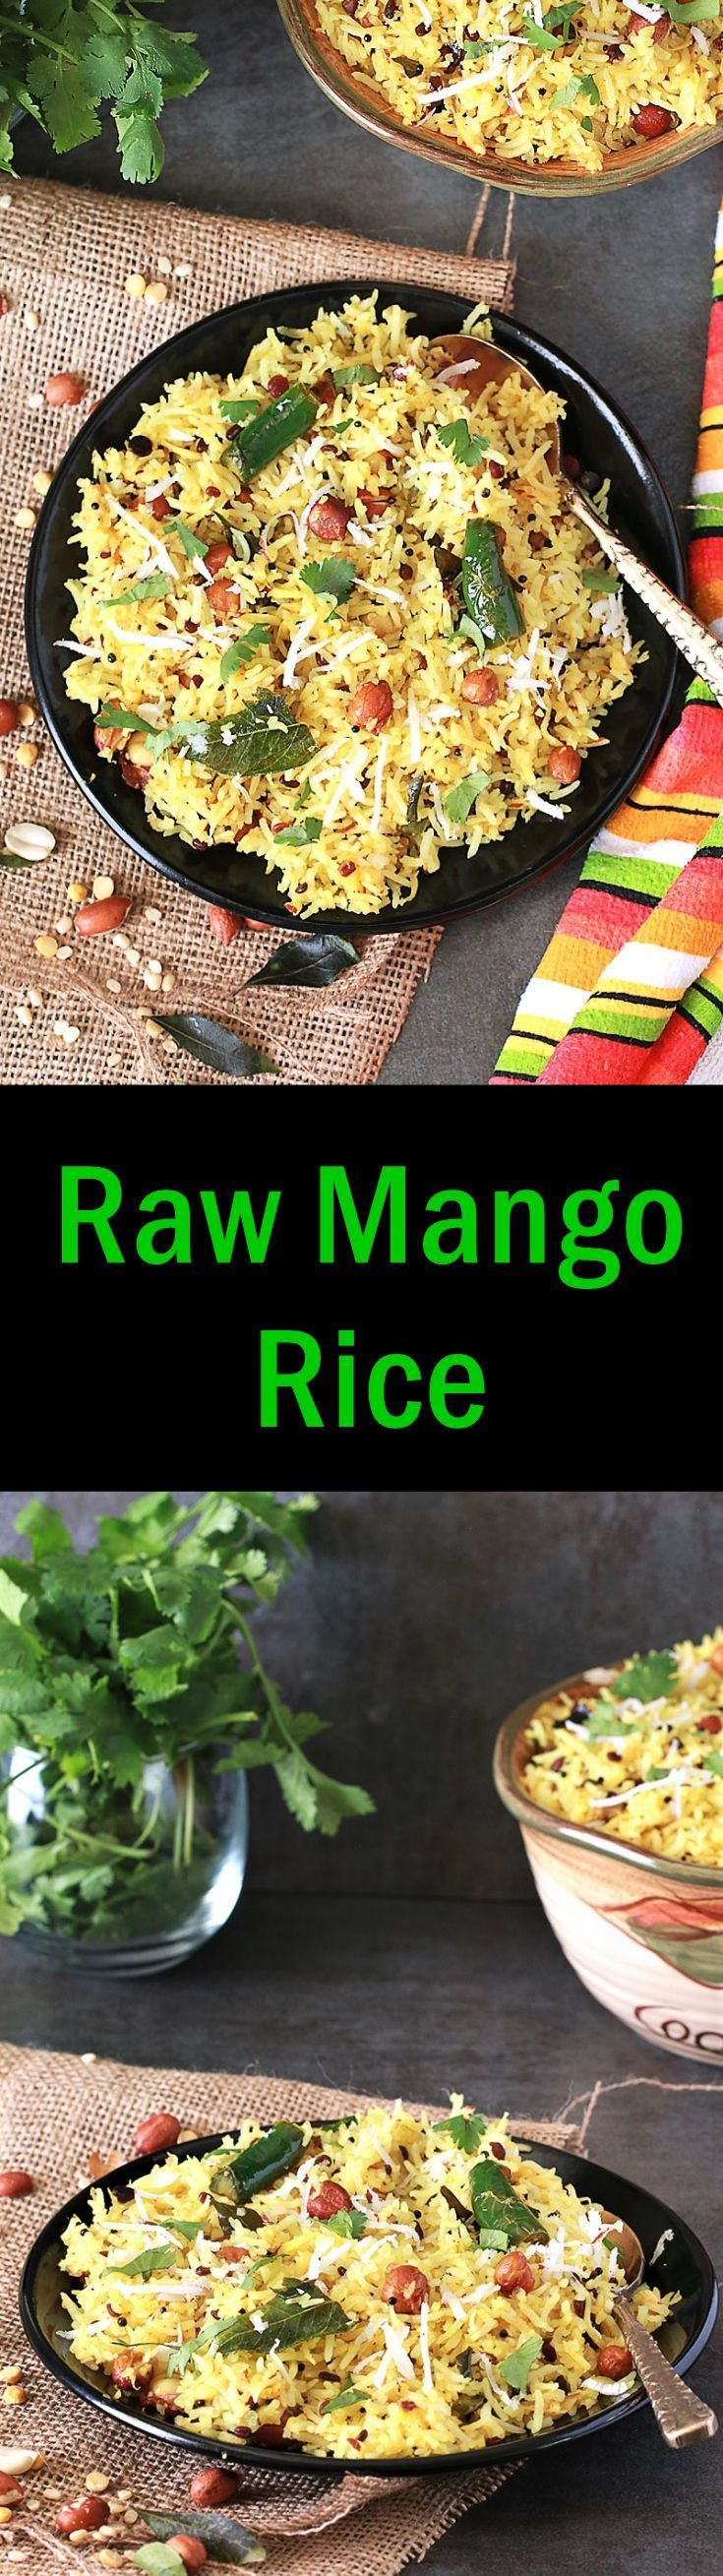 In the summer, Mangoes are widely available in fresh produce section. How can you miss the recipes made from raw mangoes!!??? This year I shared couple of recipes using mangoes. Like Aam ki launji, Raw mango chutney, Mango Mojito and Today i come up with Raw Mango Rice. This rice recipe is from South India. It is popular in Andhra, Karnataka and Tamil Nadu. It is also known as Mavinakayi Chitranna.